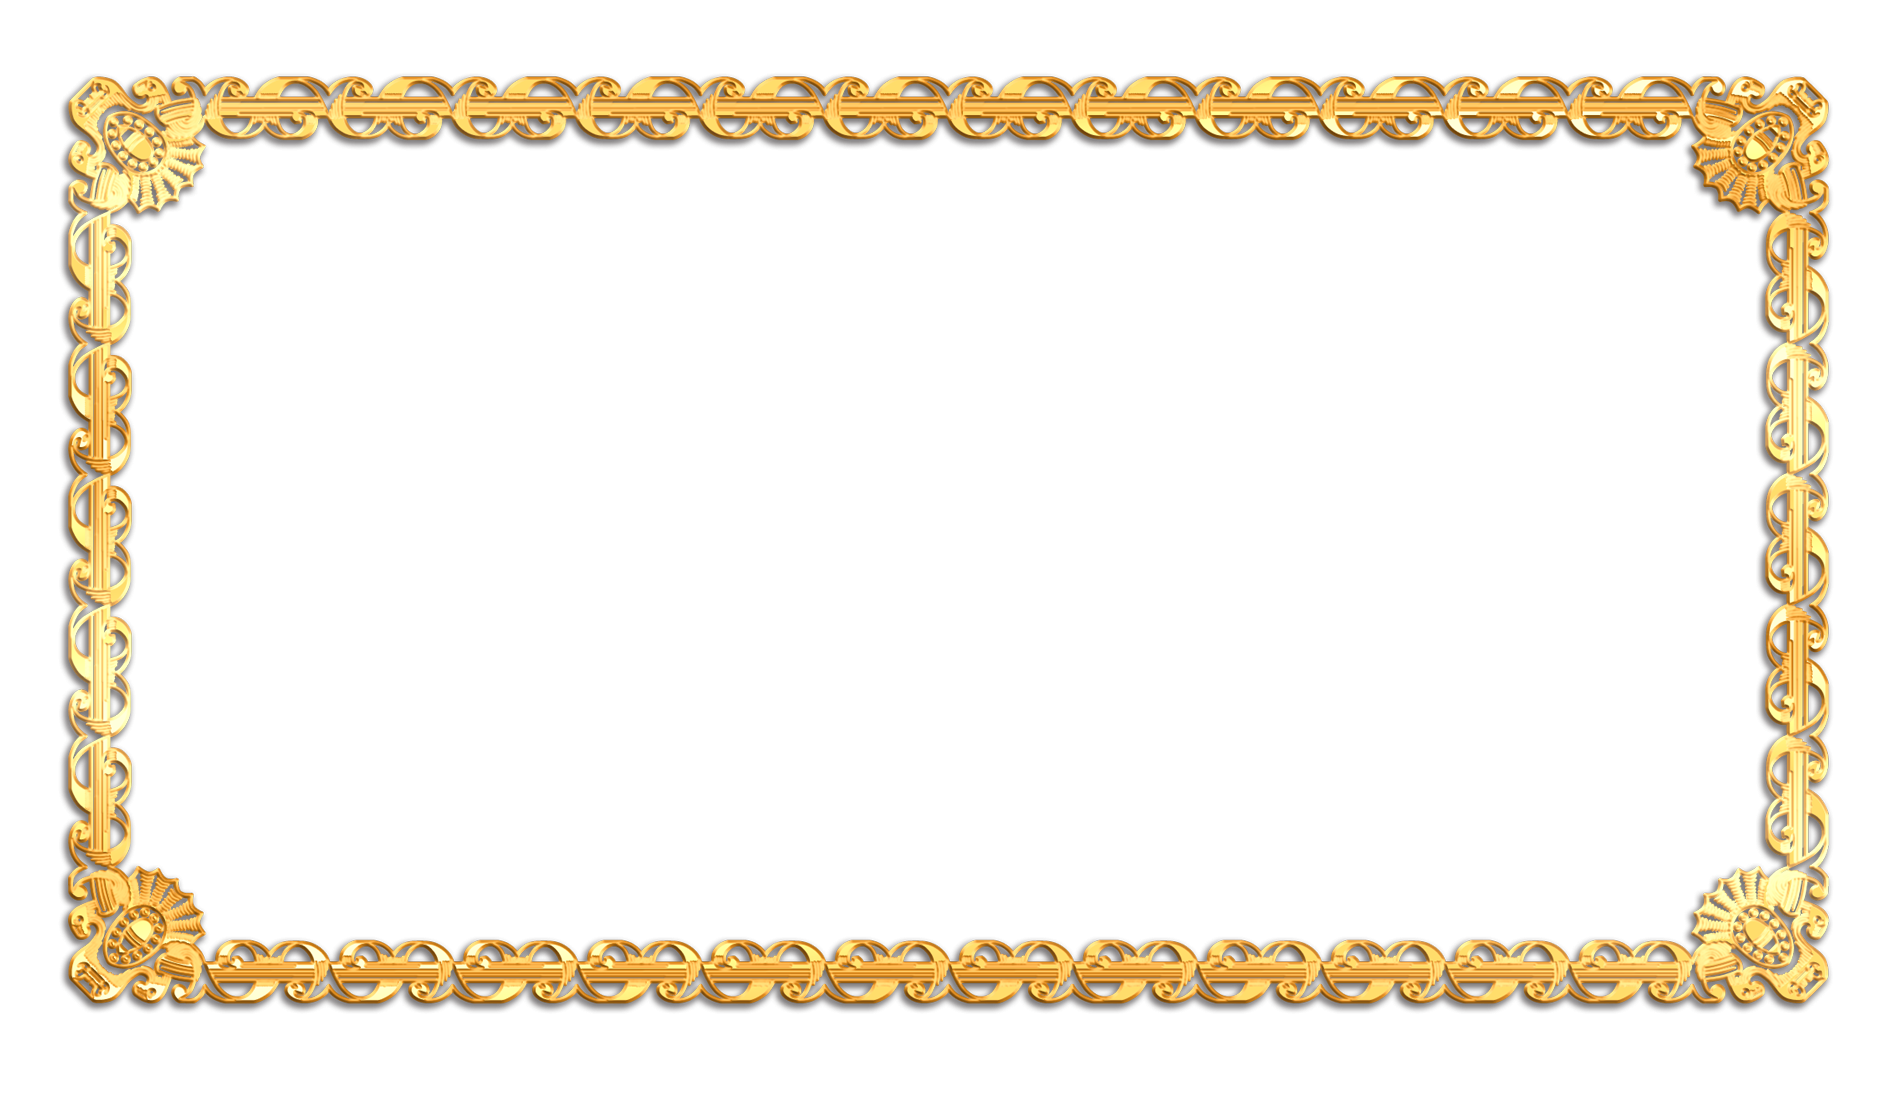 Rectangular photo transparent image. Rectangle frame png